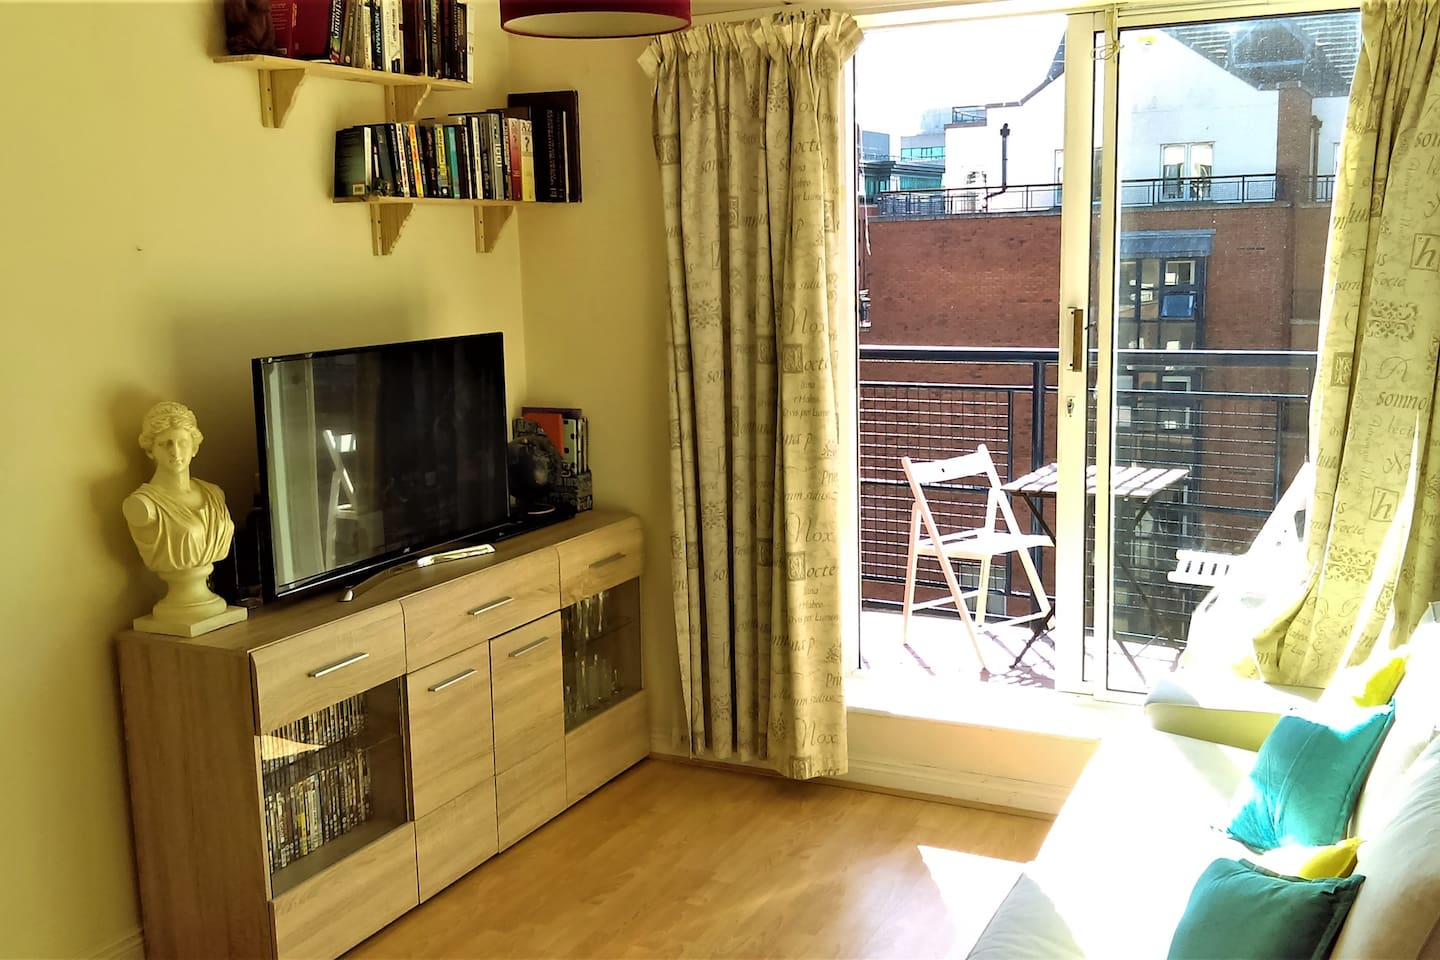 Living Room Area, equipped with a Smart TV with quick access to Netflix, Youtube and Chromecast from a smartphone.